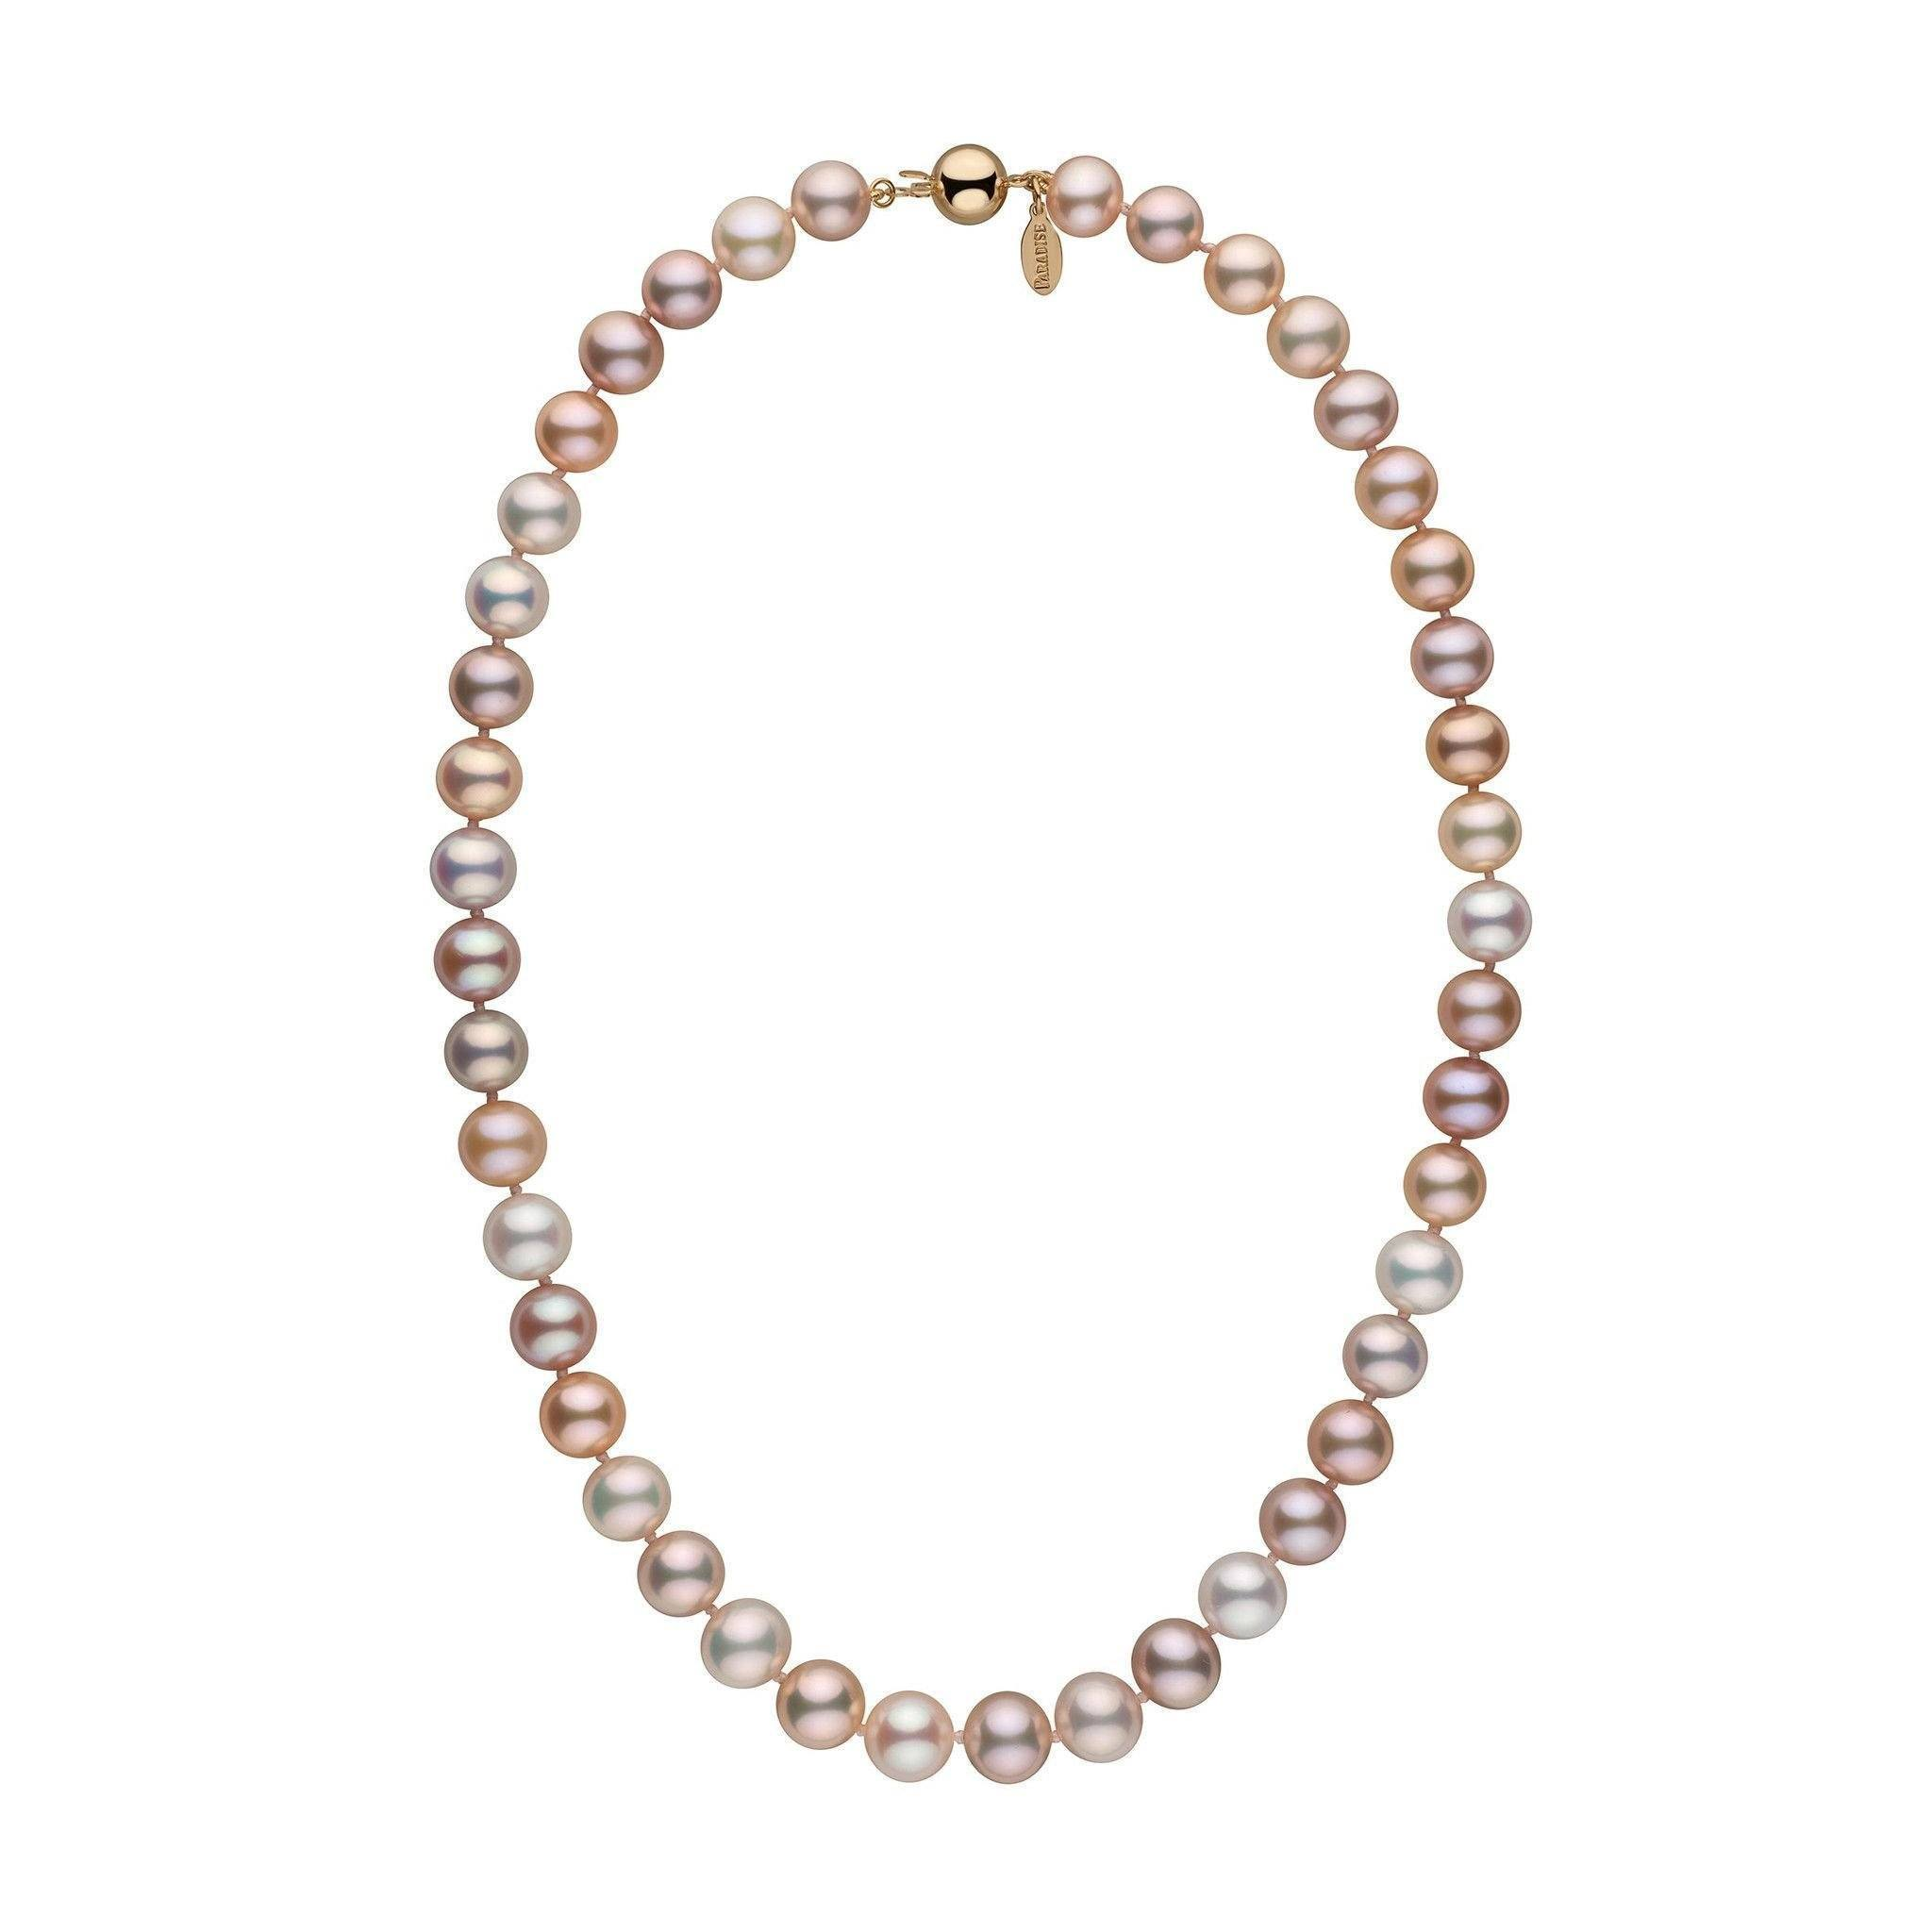 9.5-10.5 mm 18 Inch Multicolor Freshadama Freshwater Pearl Necklace